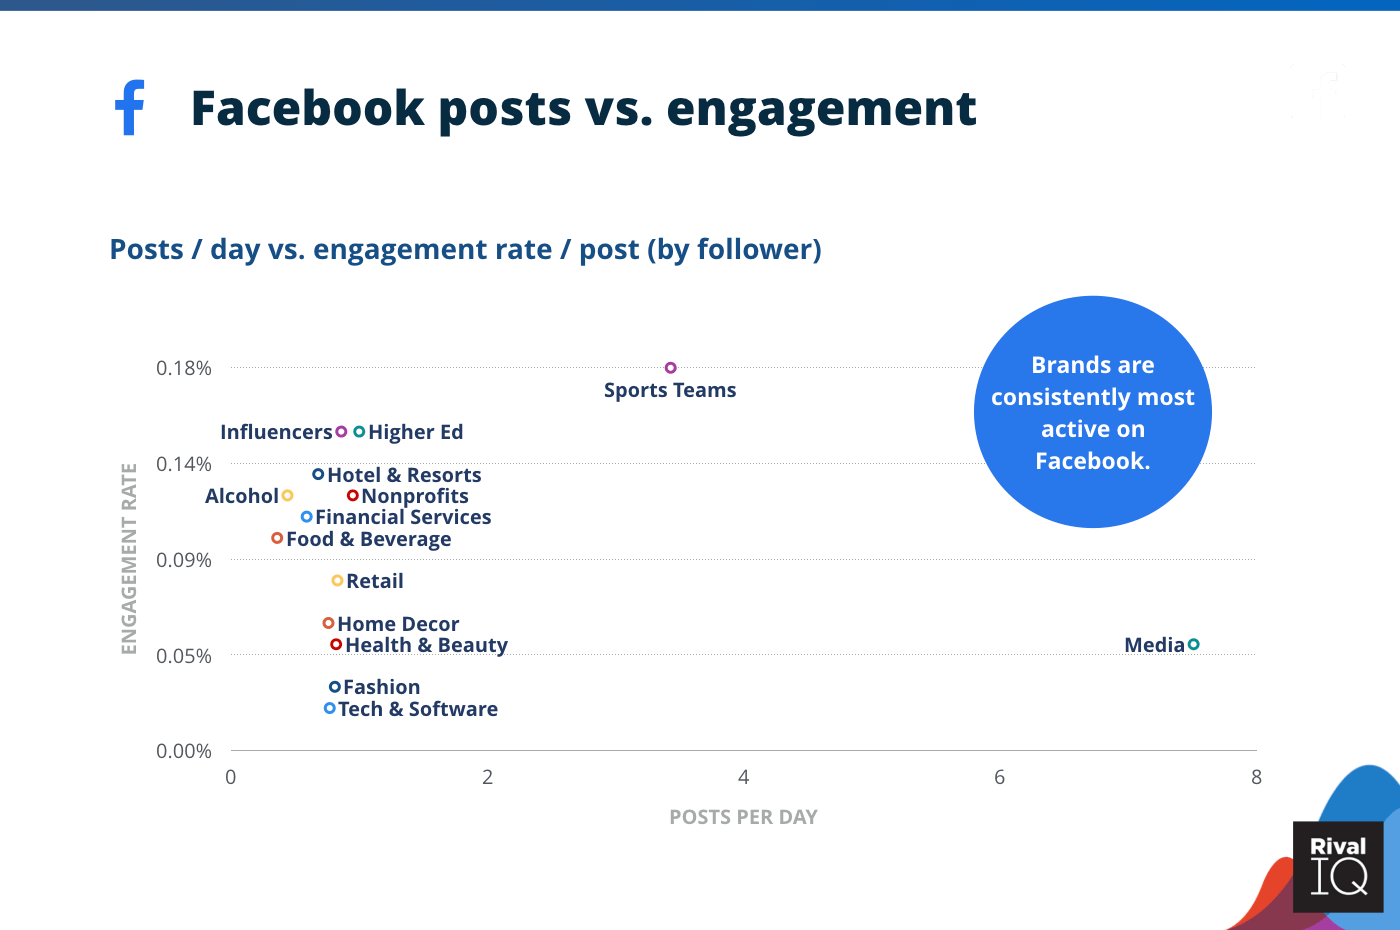 Chart of Facebook posts per day vs. engagement rate per posts, all industries